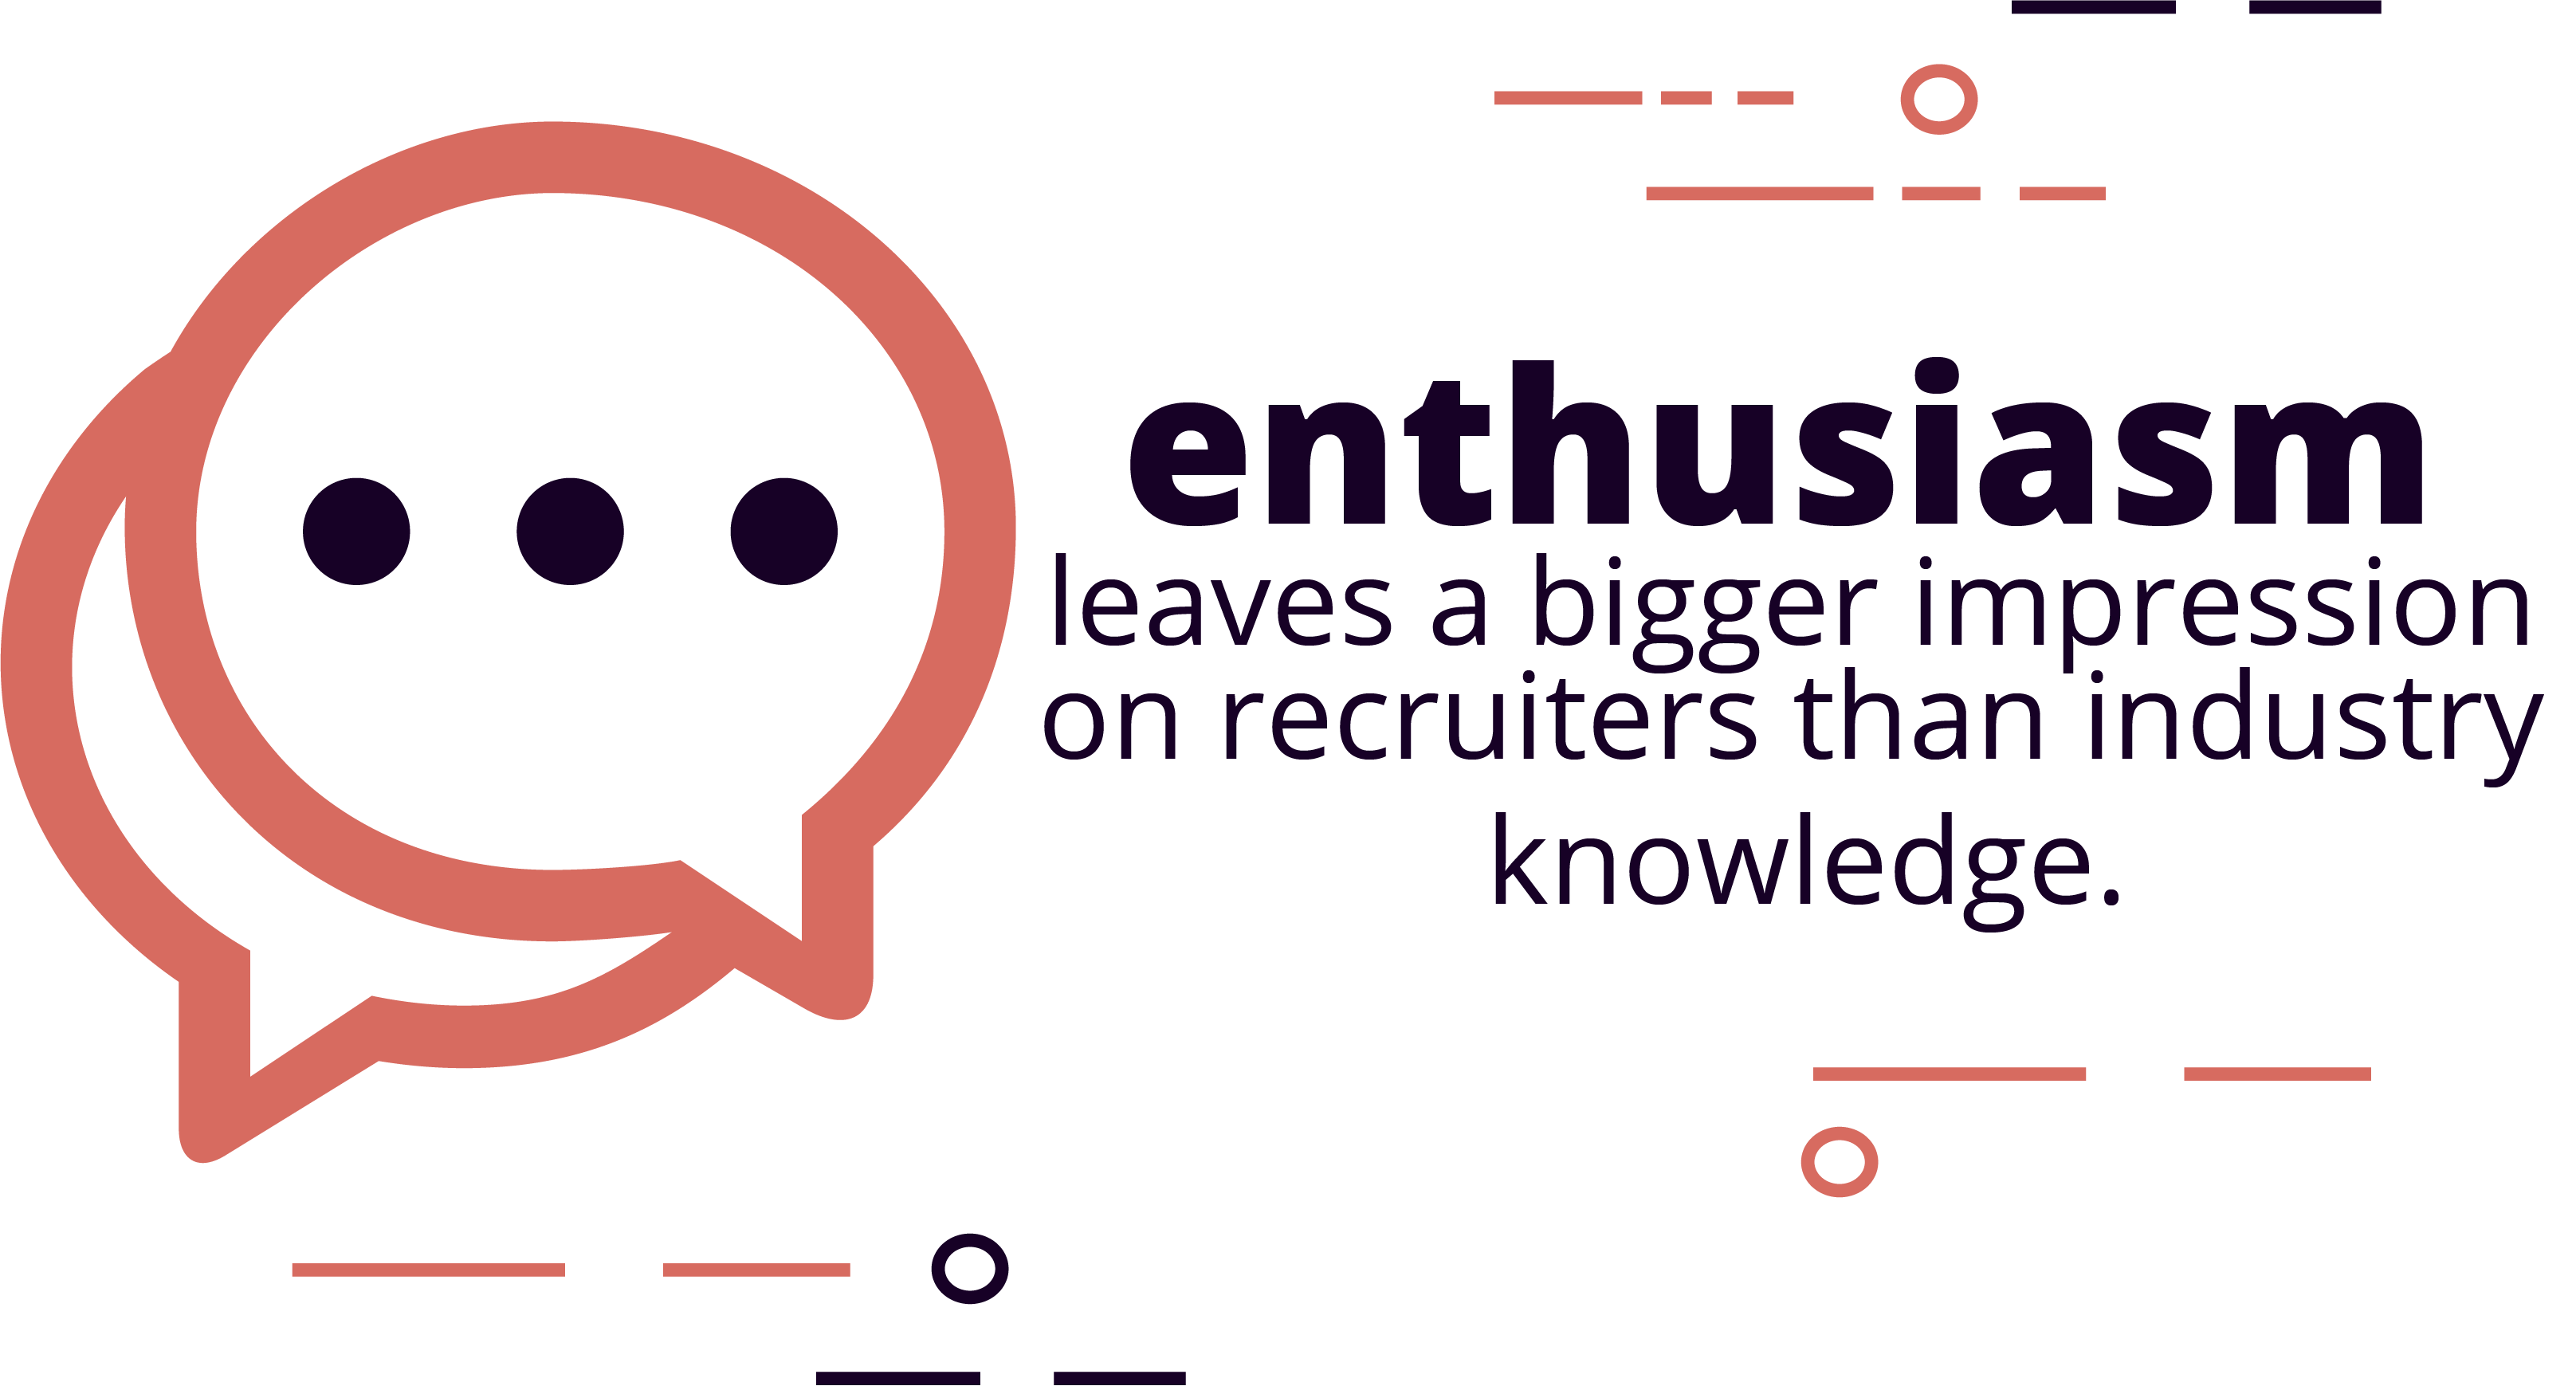 enthusiasm leaves a bigger impression on recruiters than industry knowledge